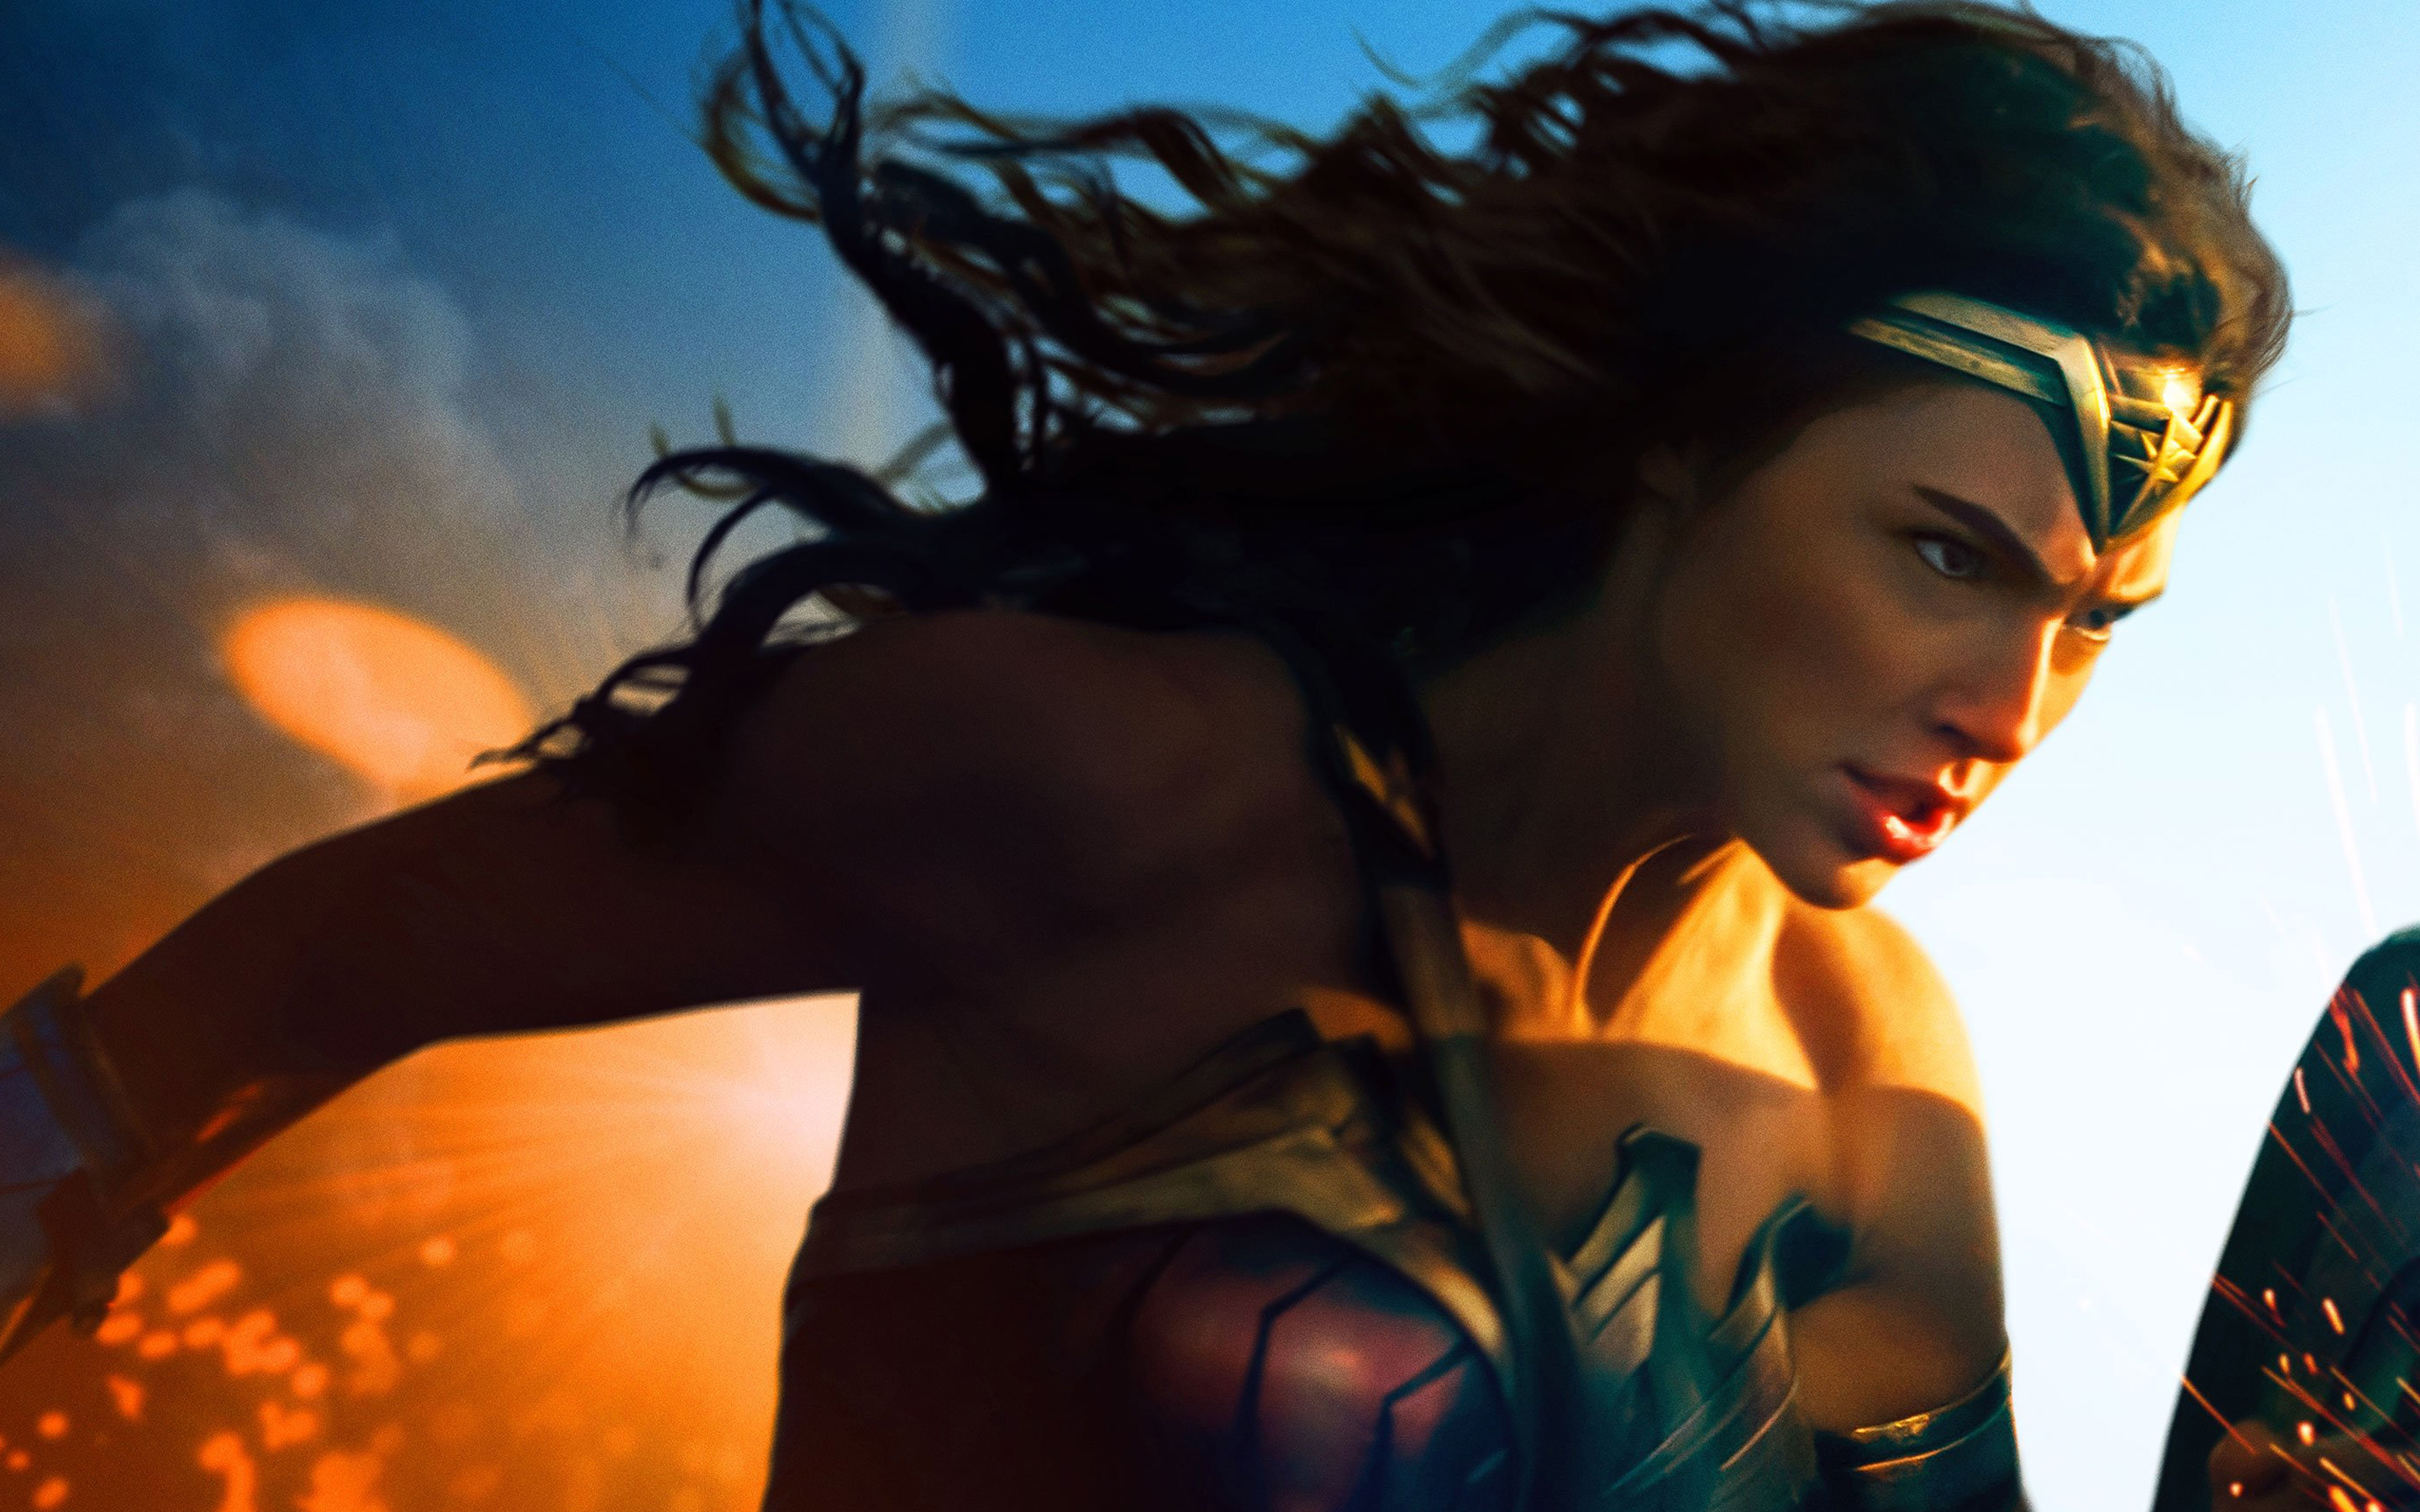 Wonder Woman 2017 Wallpapers My Free Wallpapers Hub